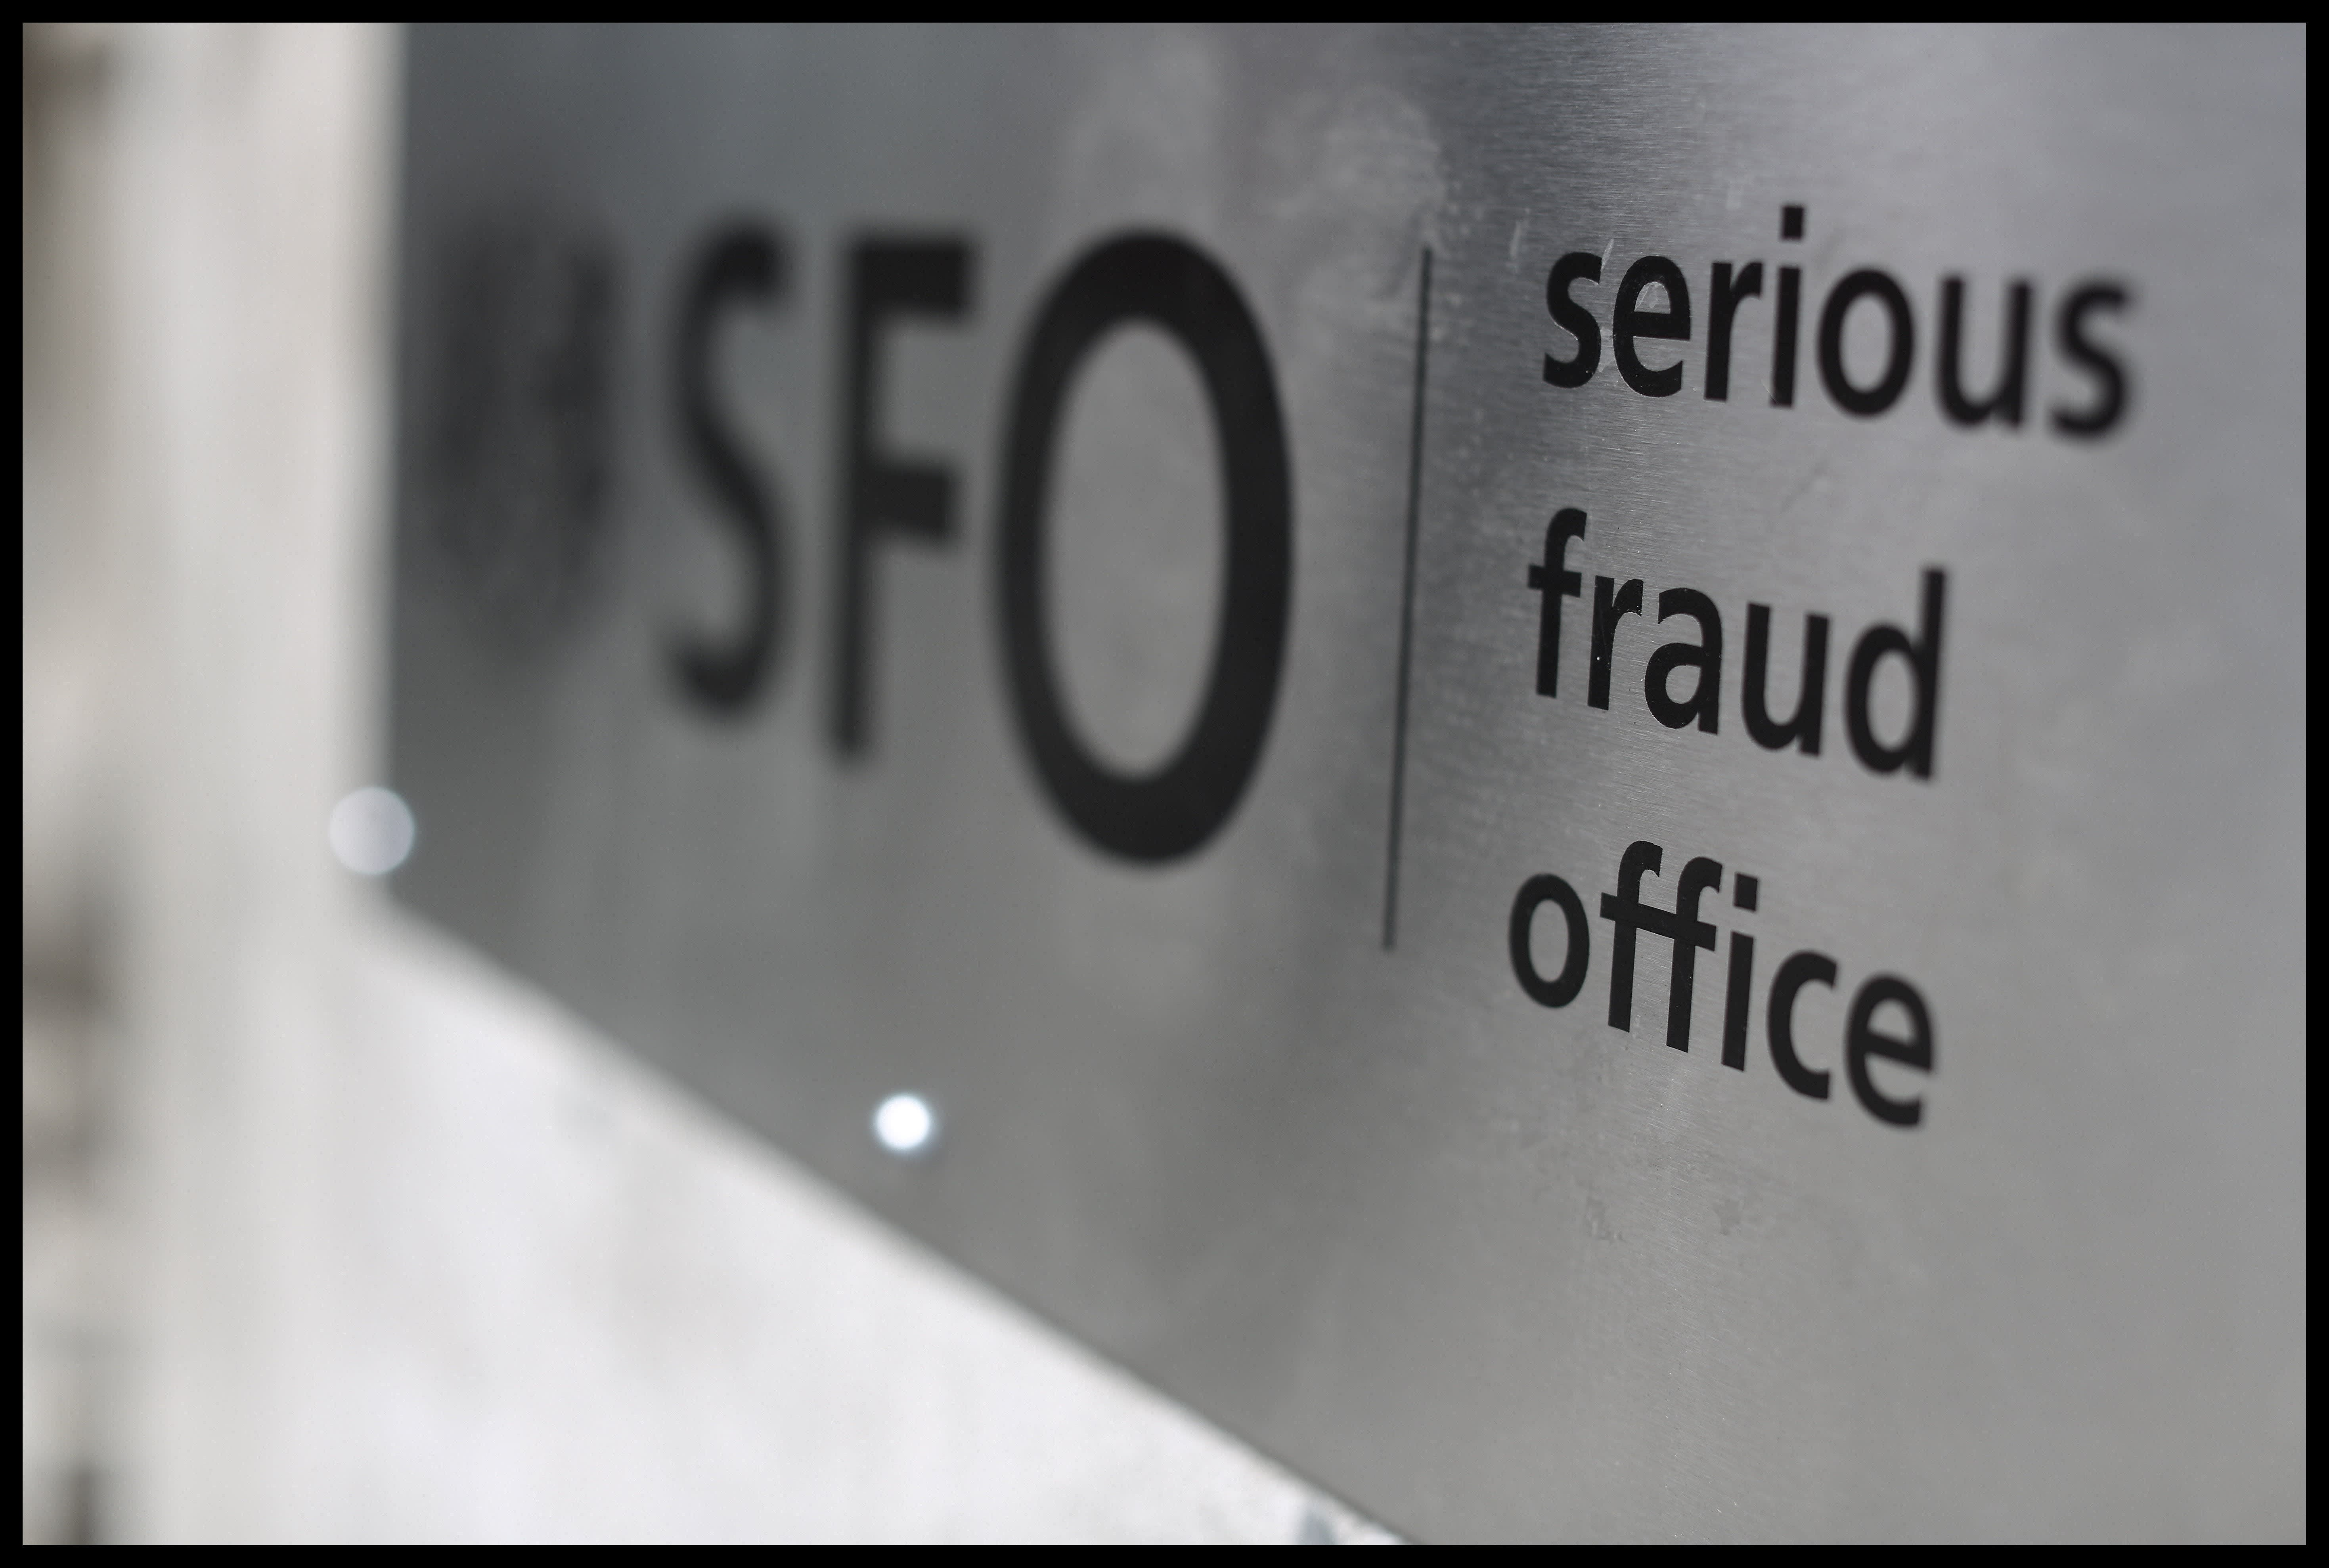 Is it worth co-operating with the Serious Fraud Office?